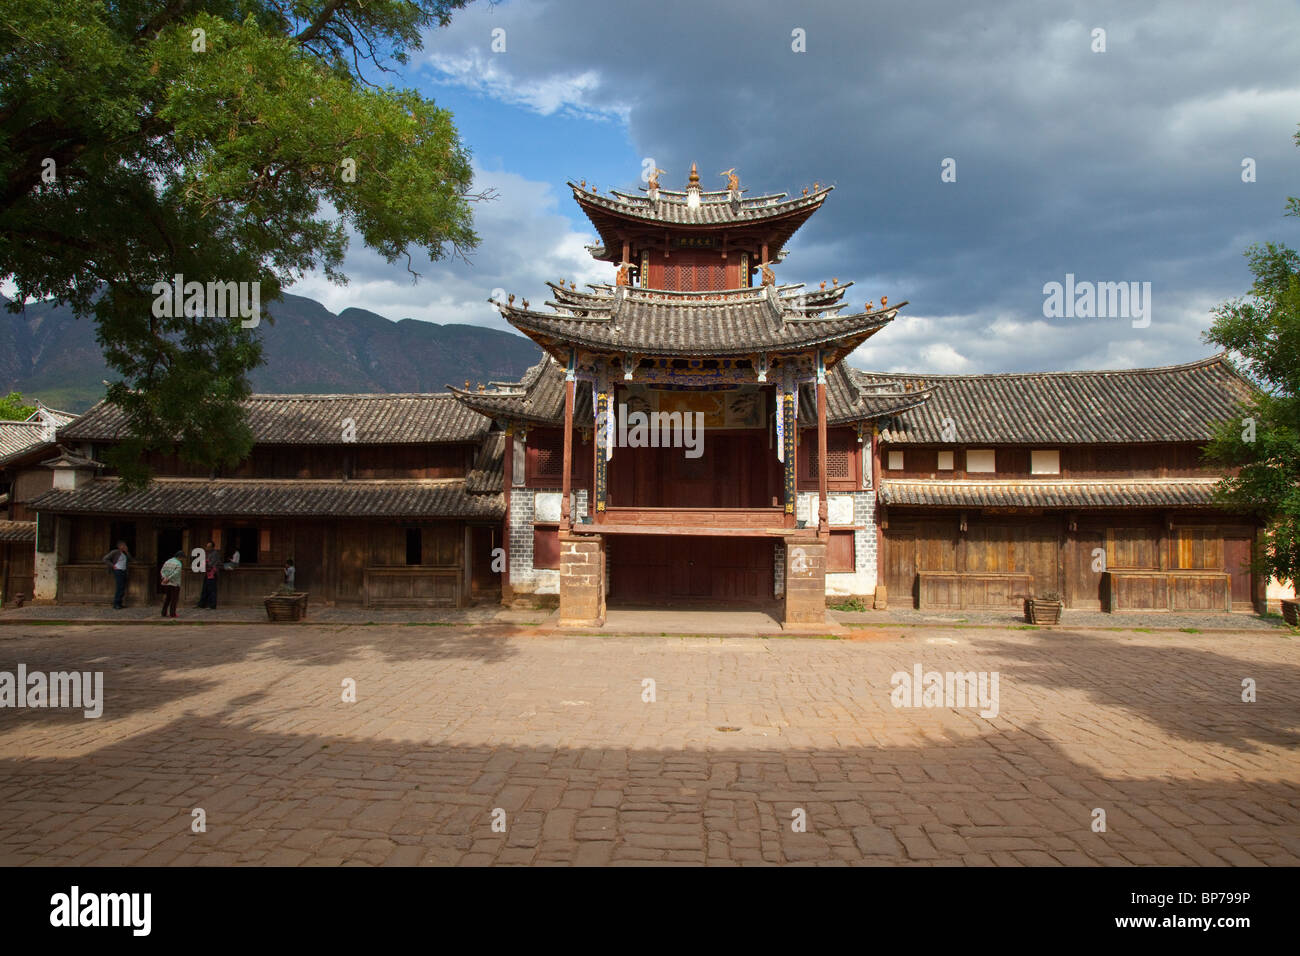 Three Terraced Pavilion in Shaxi Village, Yunnan Province, China Stock Photo